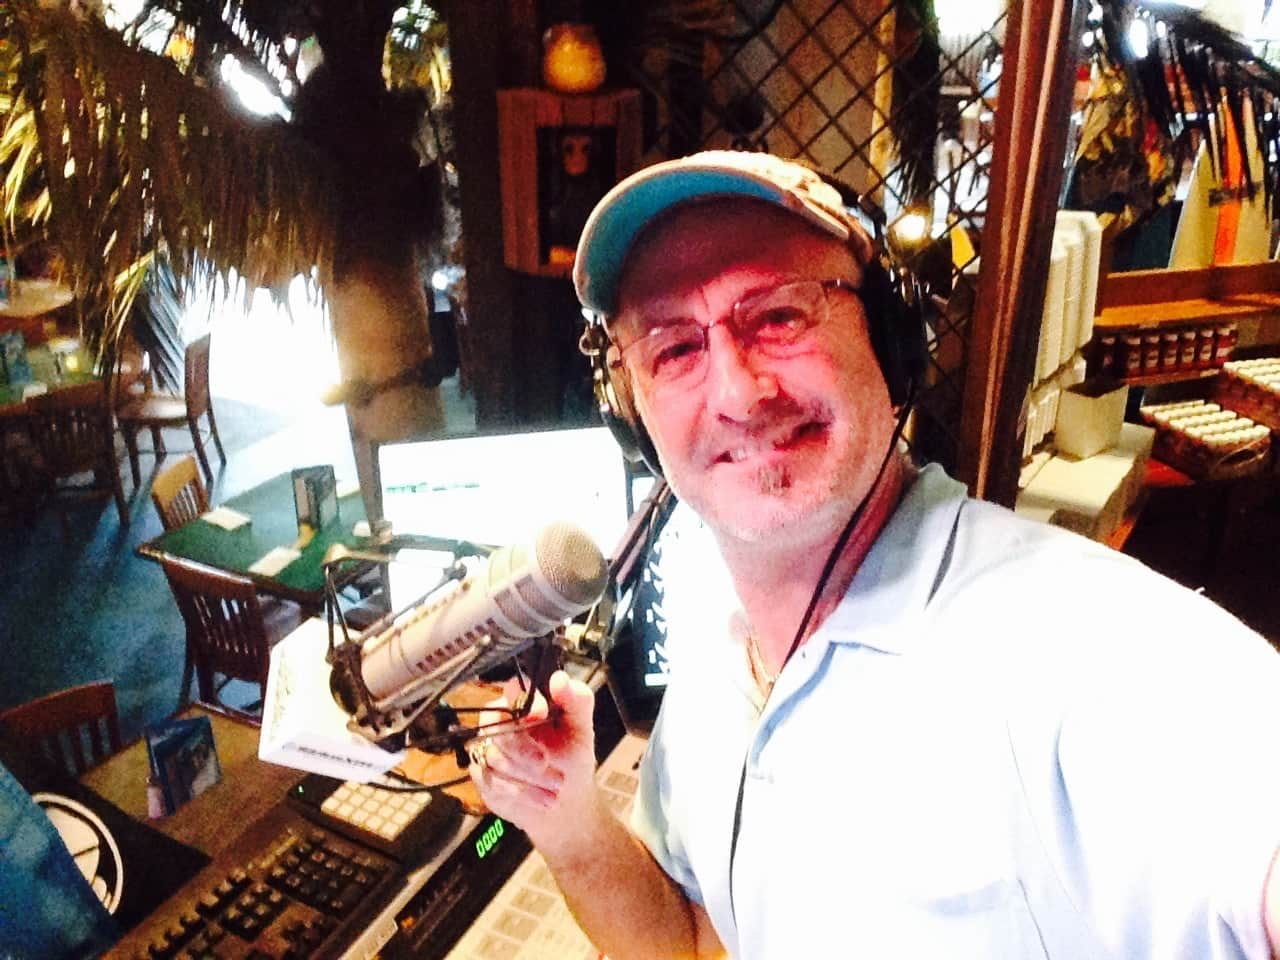 Tales from the Parrot Perch: An Interview with JD Spradlin of Radio Margaritaville